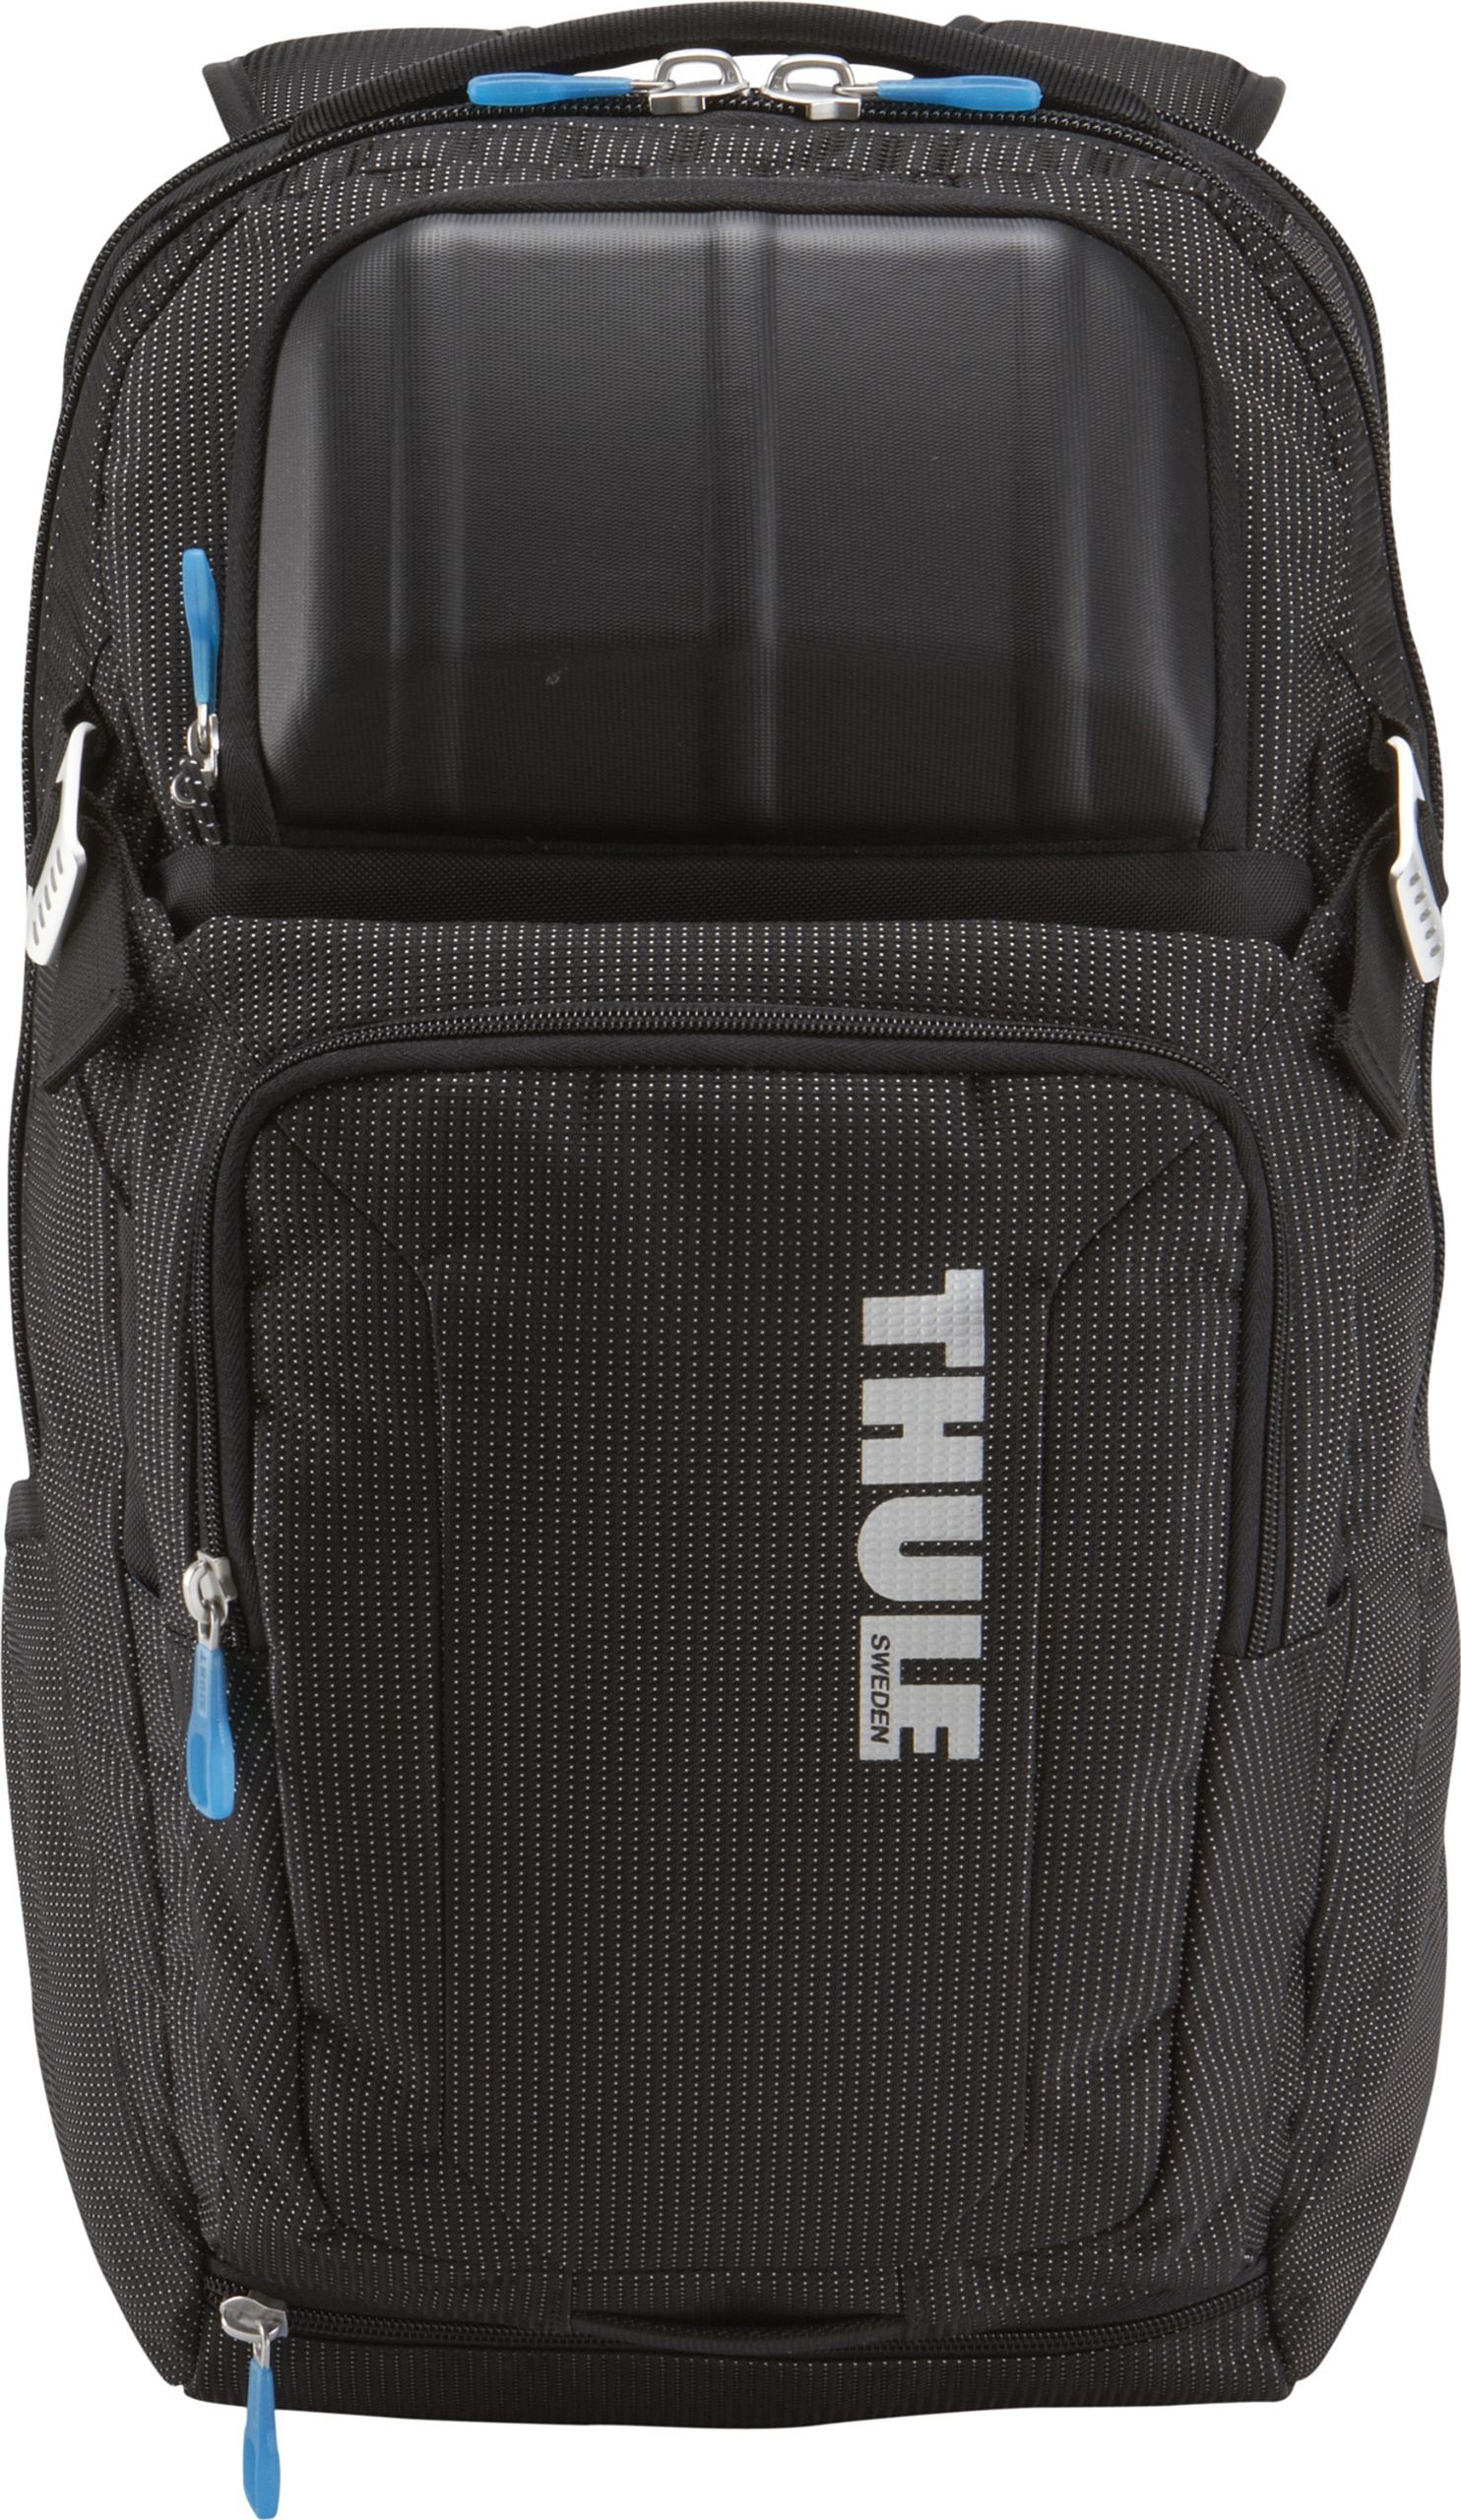 Thule Crossover 32L Backpack - Black by Thule (Image #1)